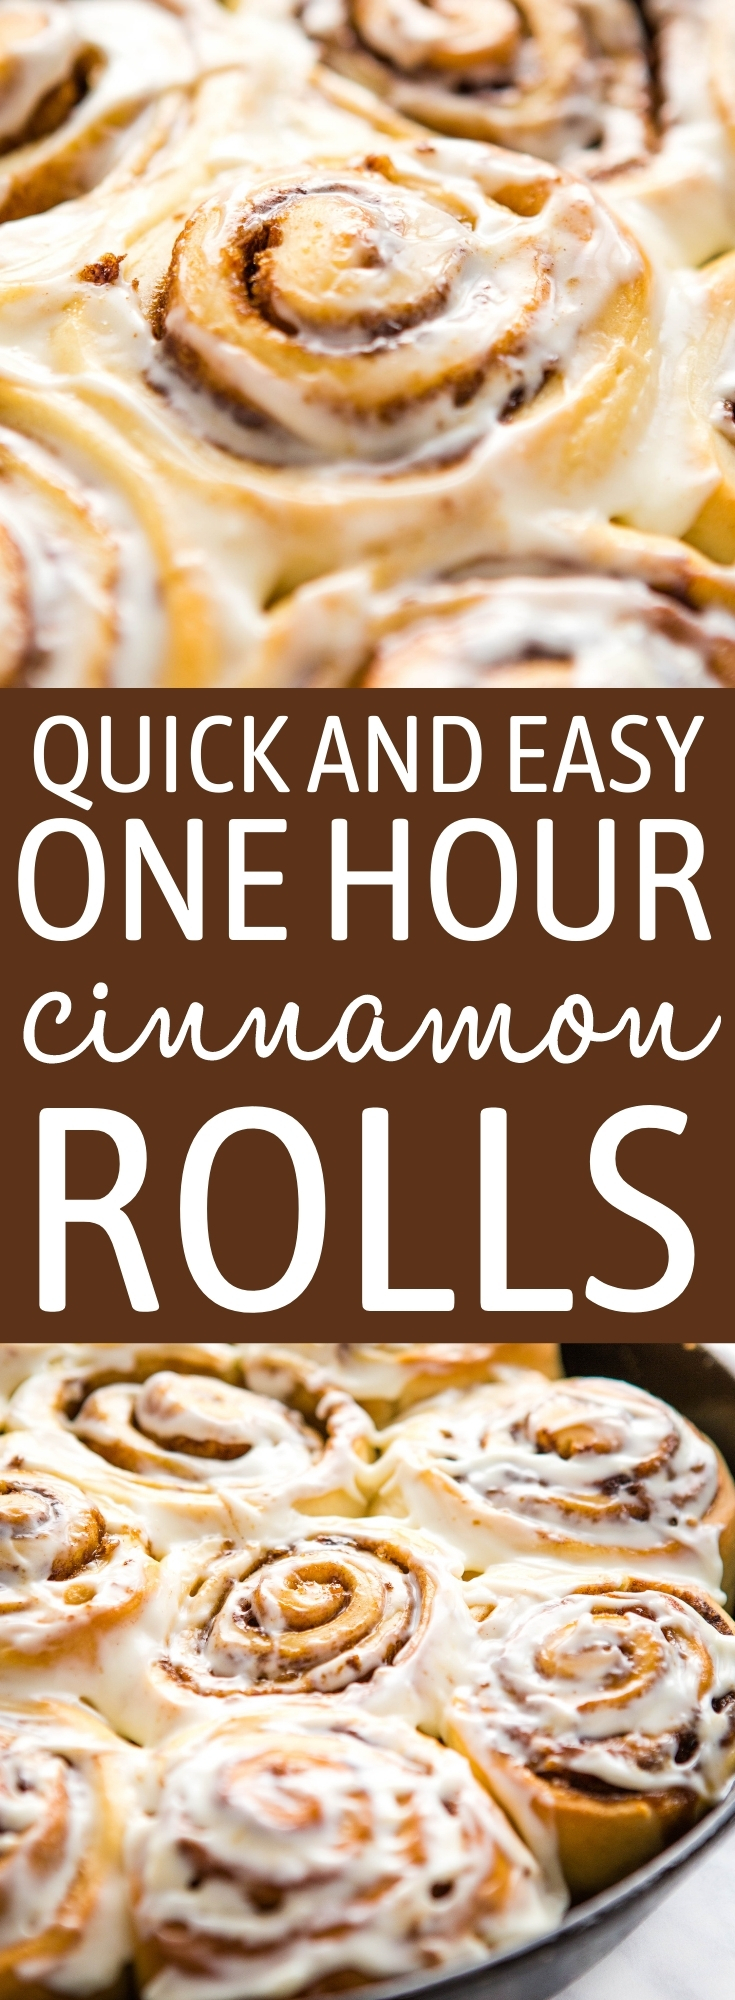 These Quick & Easy Cinnamon Rolls are the BEST simple cinnamon rolls to make in only 1 hour - with my pro tips and tricks! Fluffy, sweet and delicious with an easy cream cheese frosting! Recipe from thebusybaker.ca! #cinnamonrolls #onehourcinnamonrolls #easycinnamonrolls #quickcinnamonrolls #dessert #breakfast #brunch #easyrecipe #baking via @busybakerblog